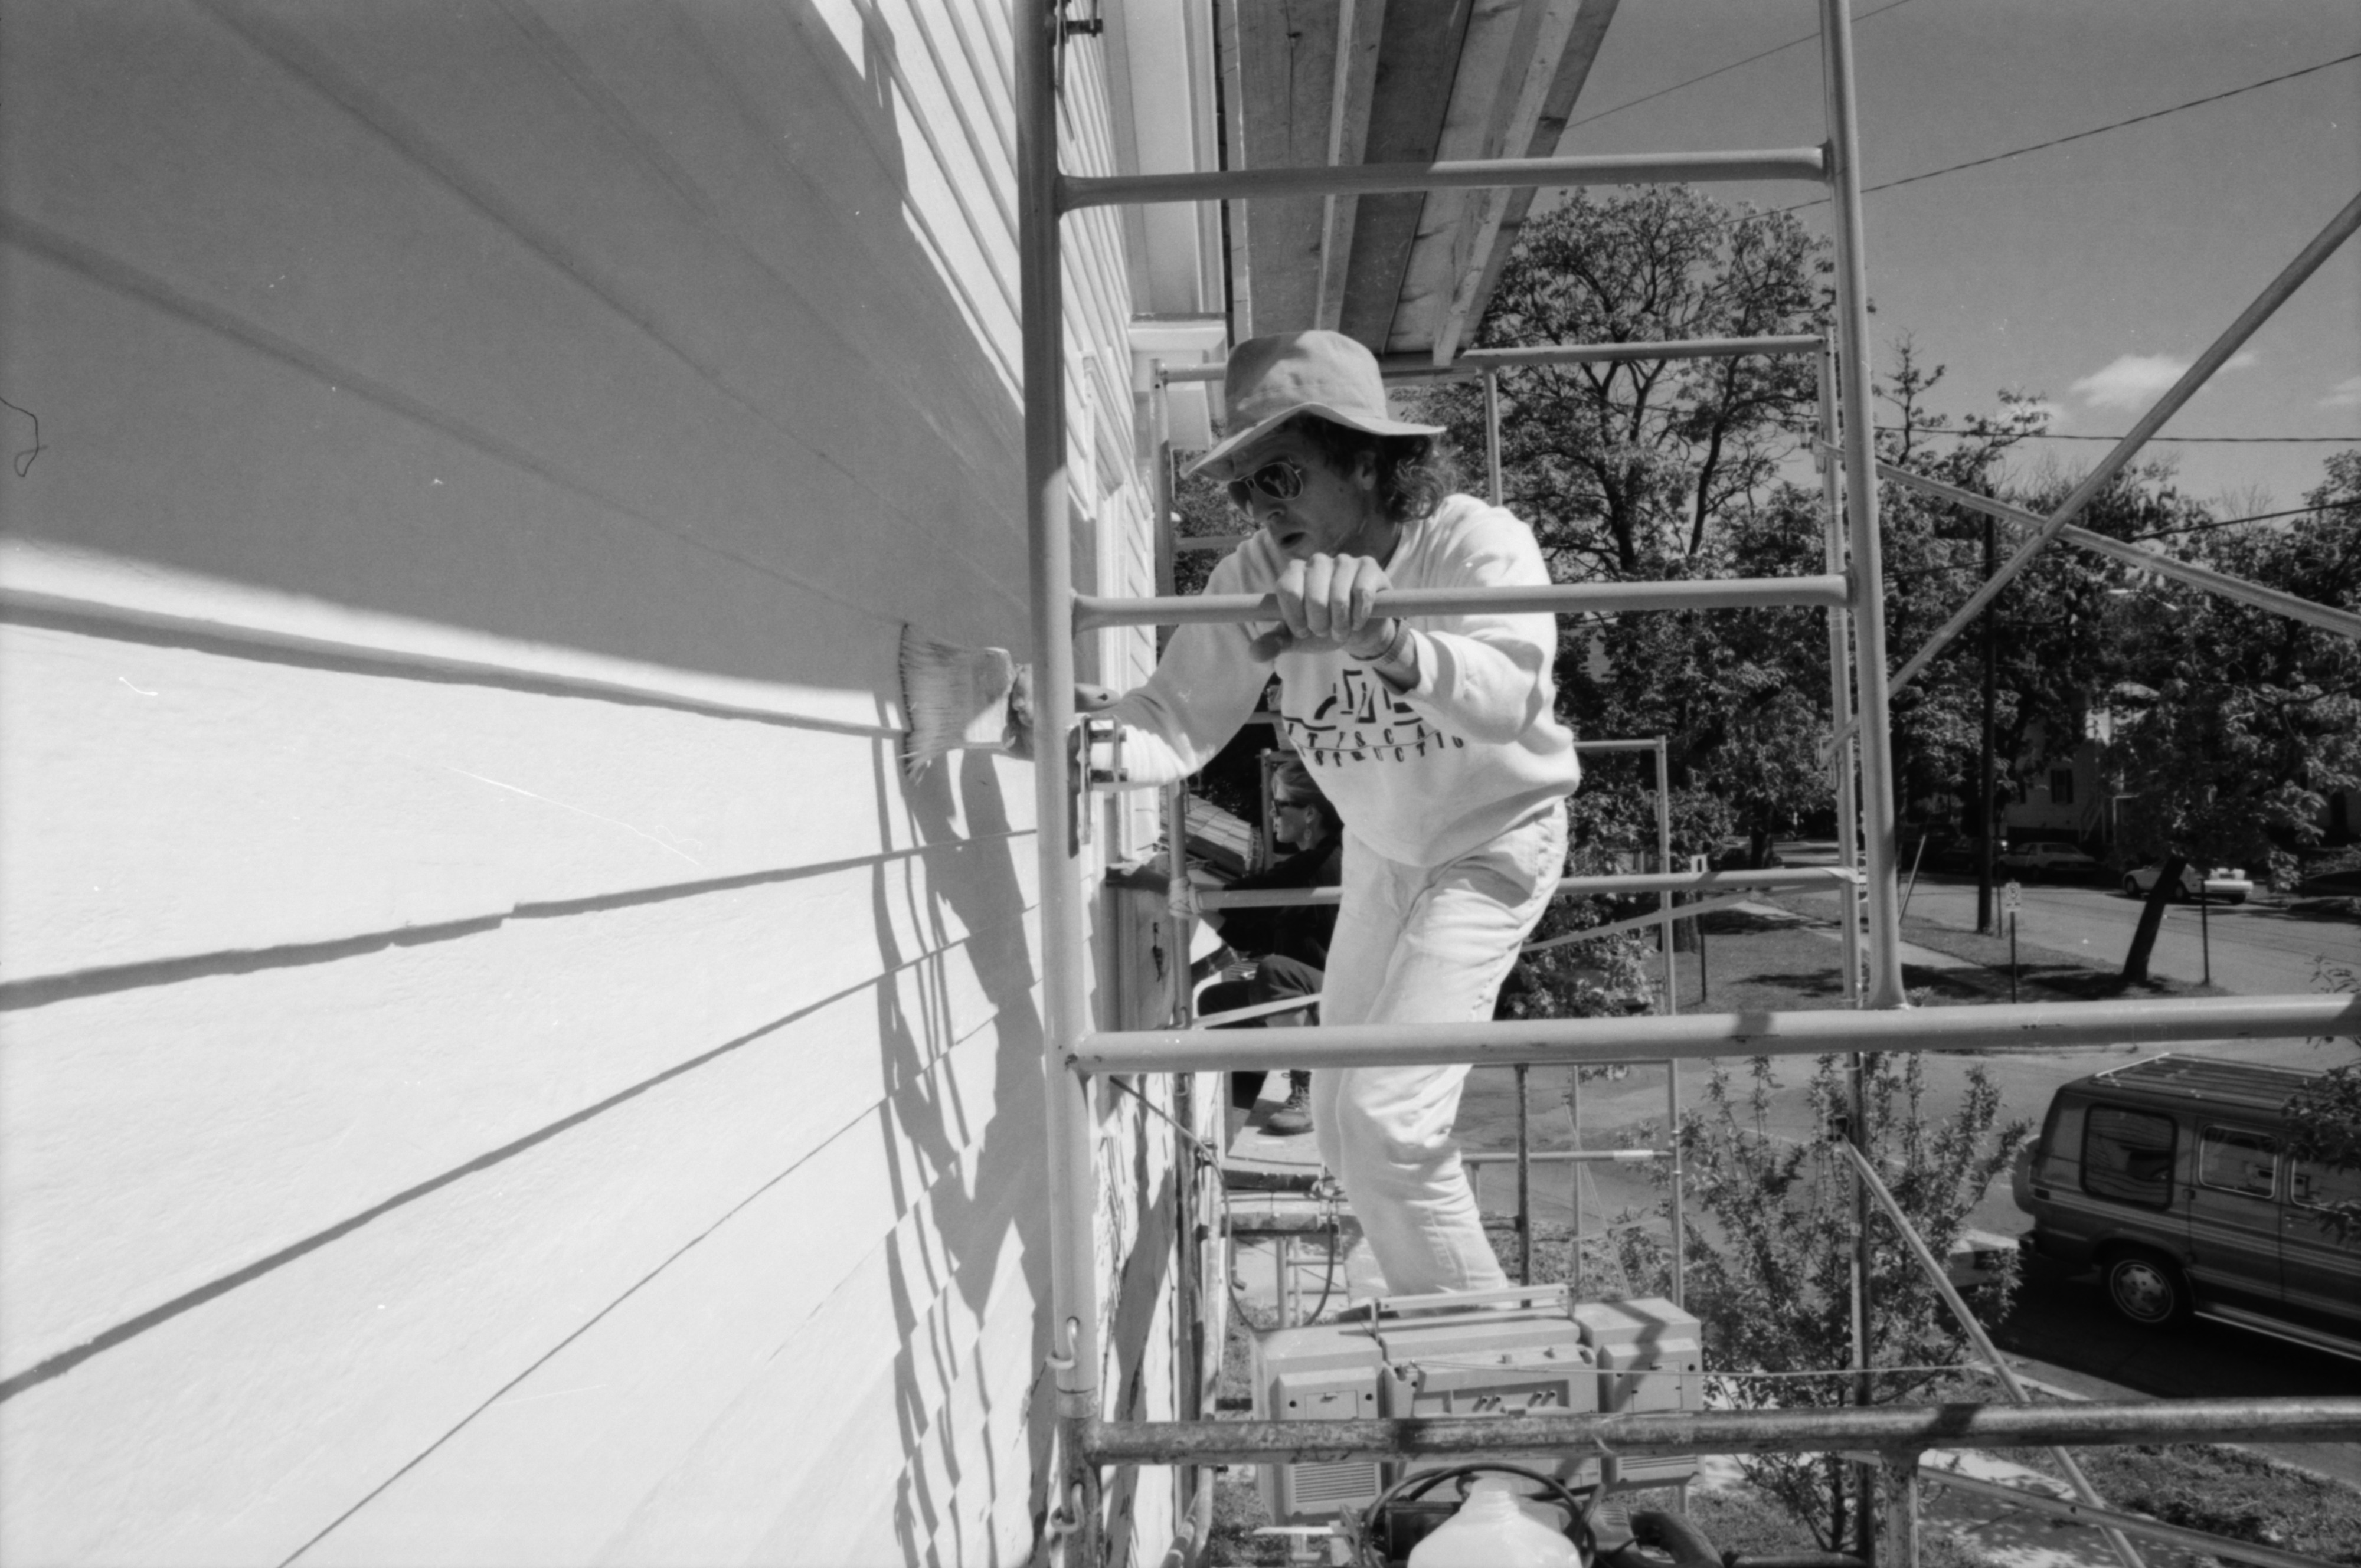 Painting the Washtenaw County Historical Society house image